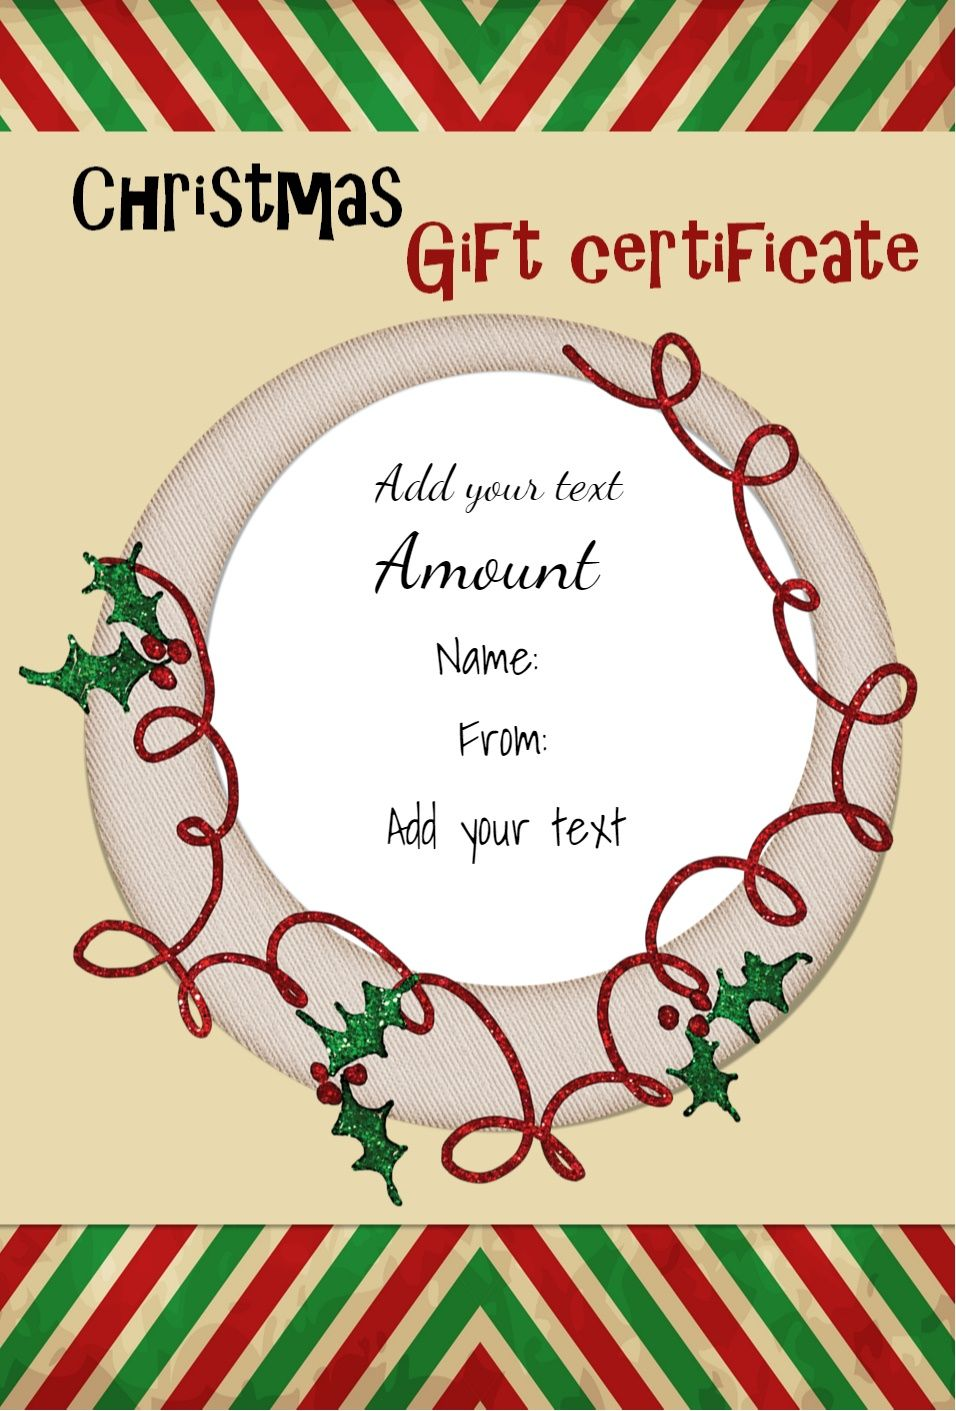 christmasgiftcertificatetemplate31.jpg (956×1411